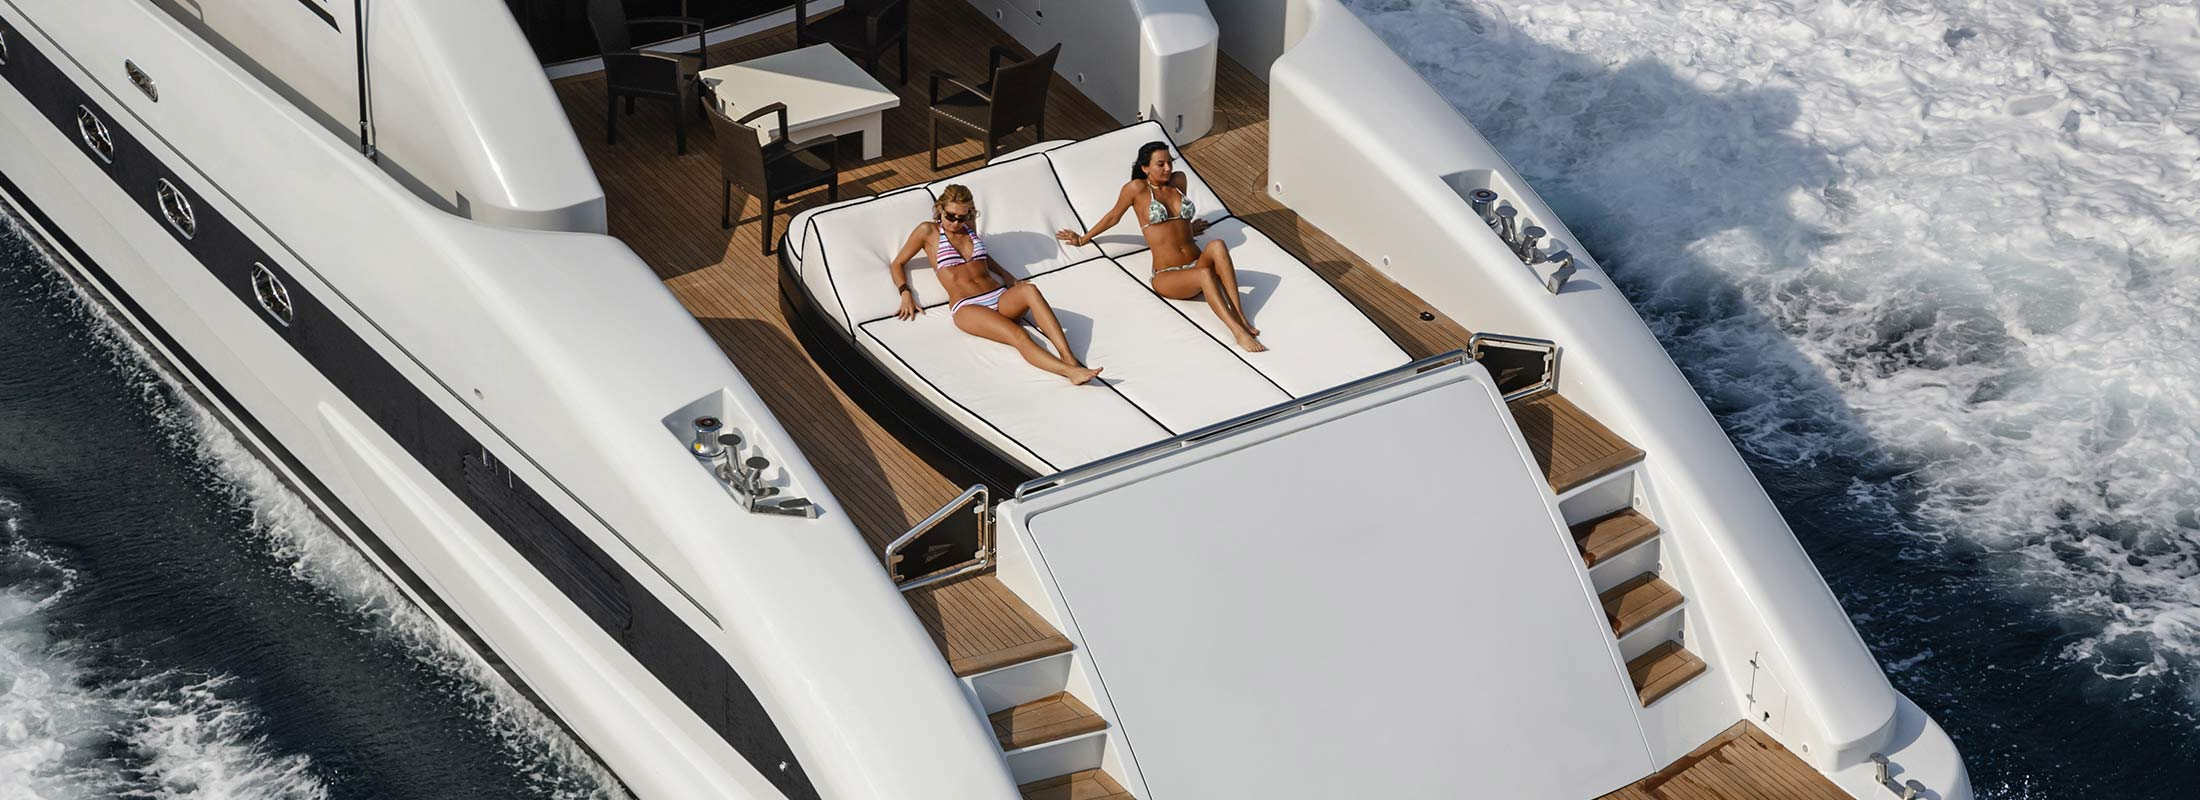 charter a sailing or motor luxury yacht charter slider 1